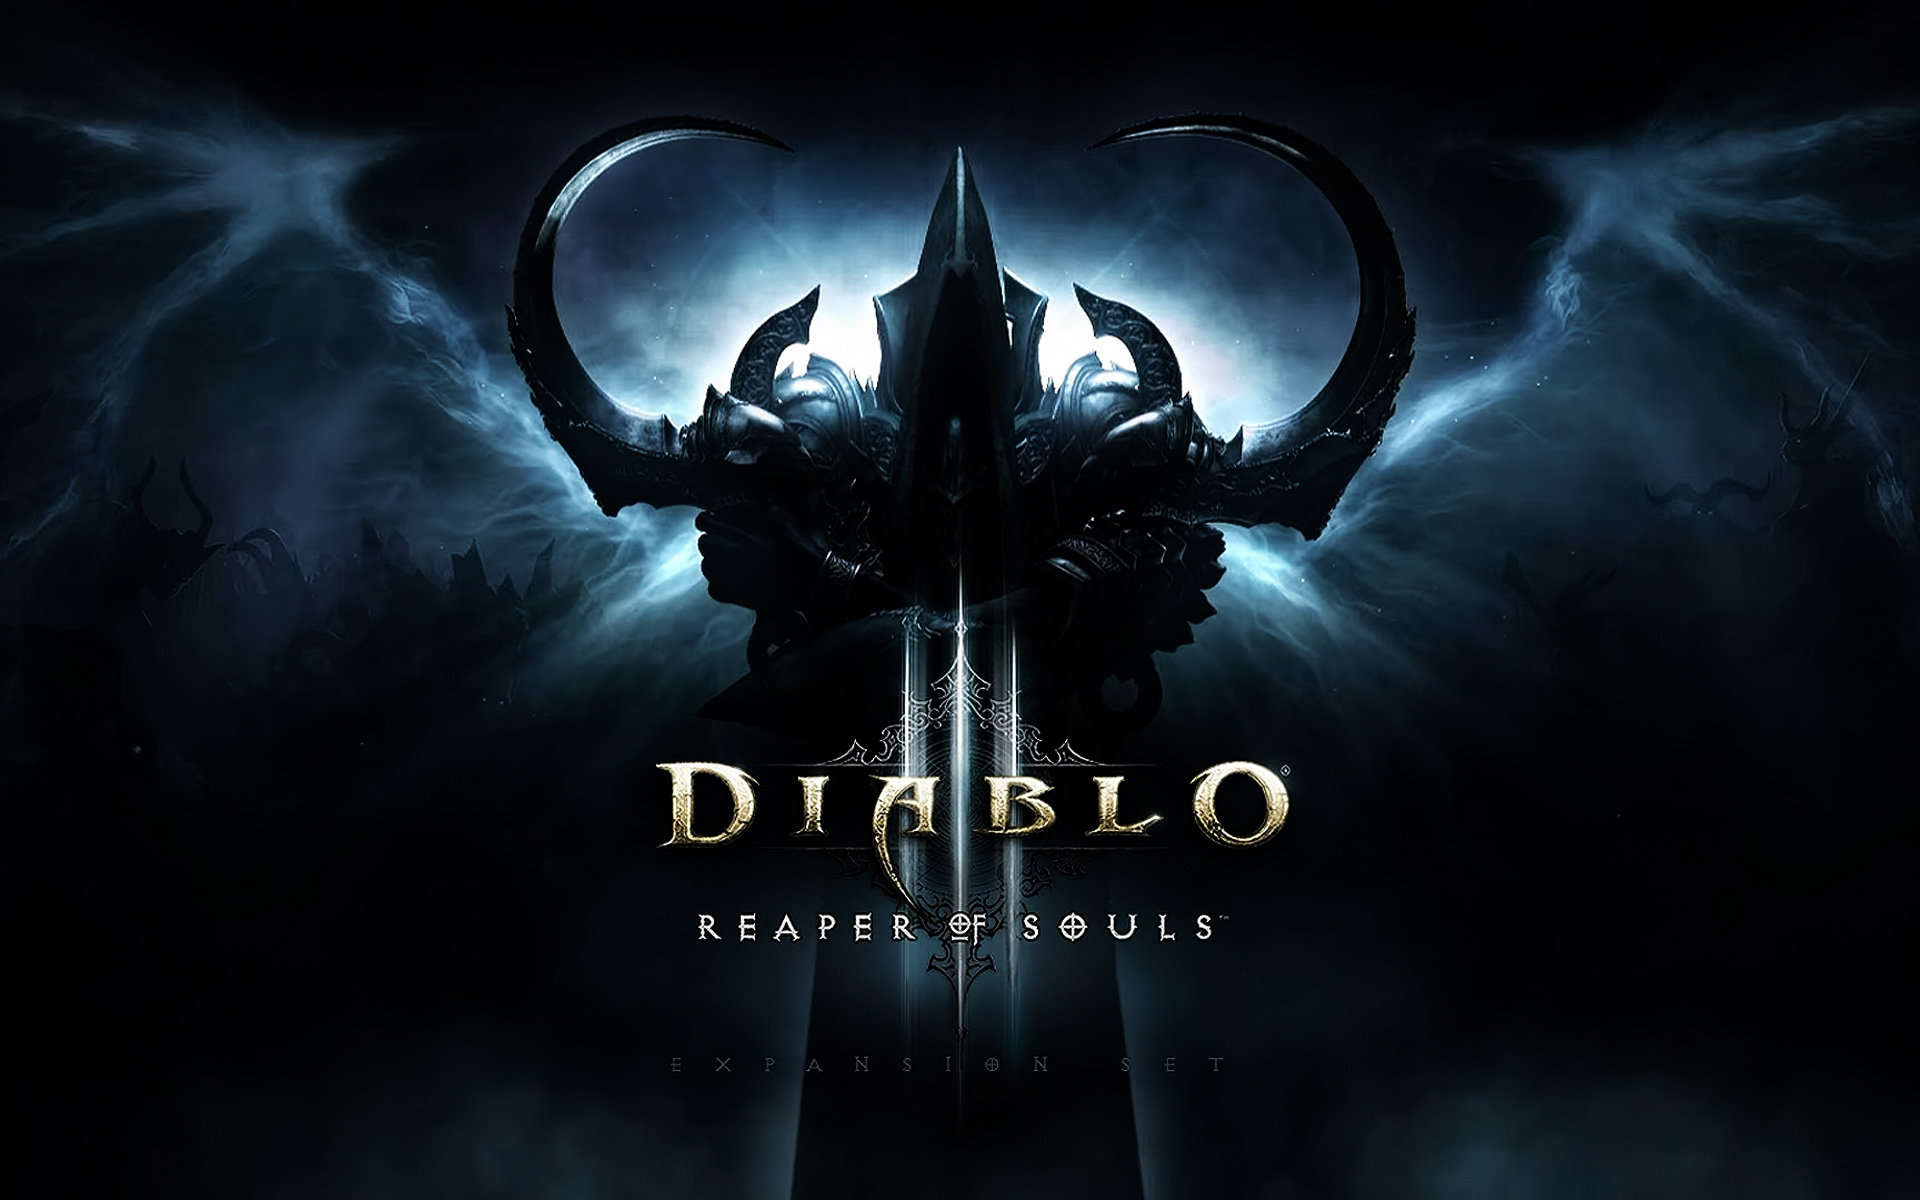 Diablo III Reaper of Souls Expansion Set